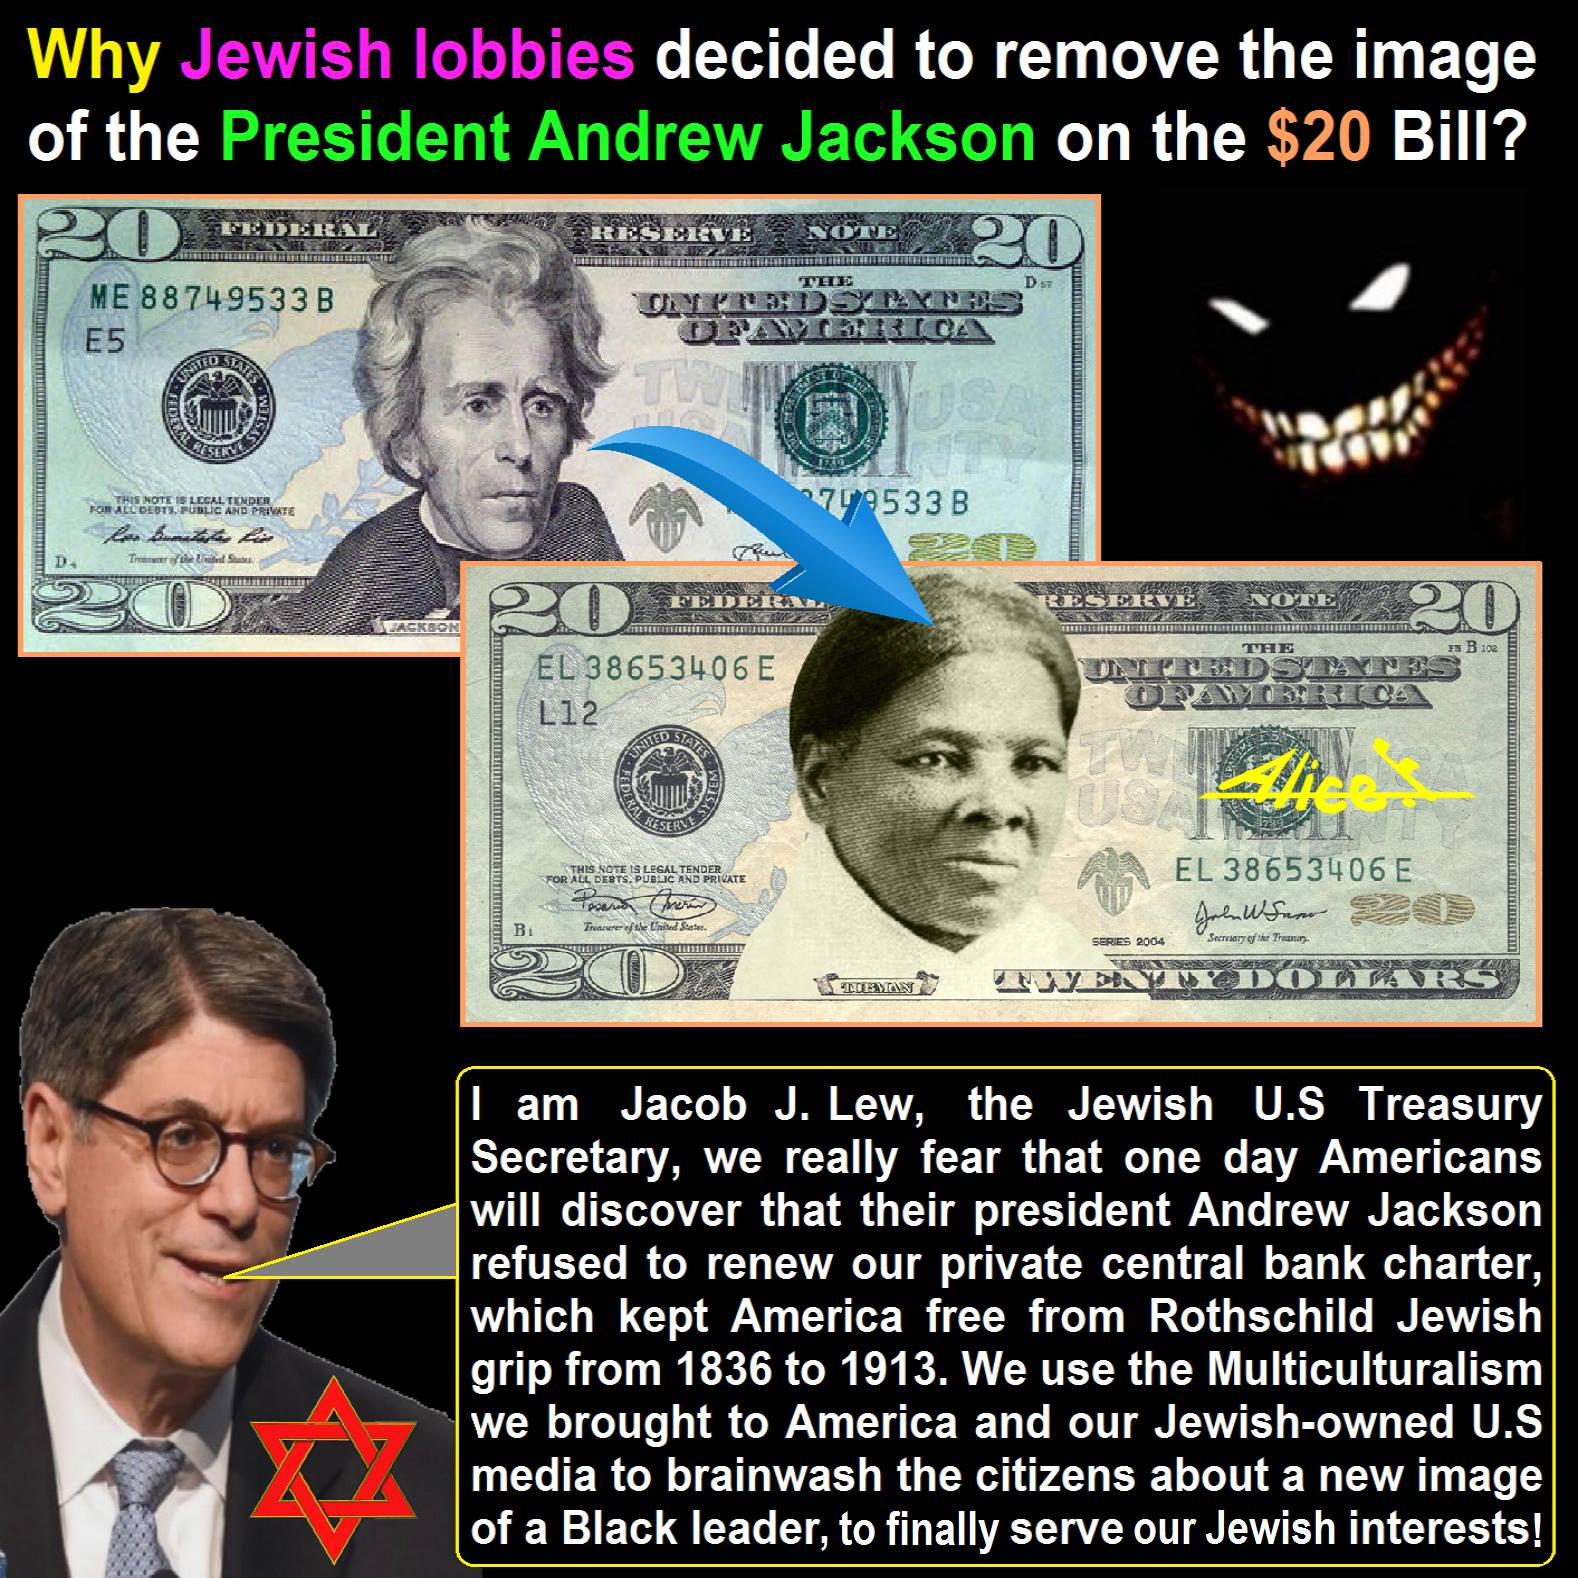 Why Jewish Lobbies Removed Andrew Jackson From The $20 Bill